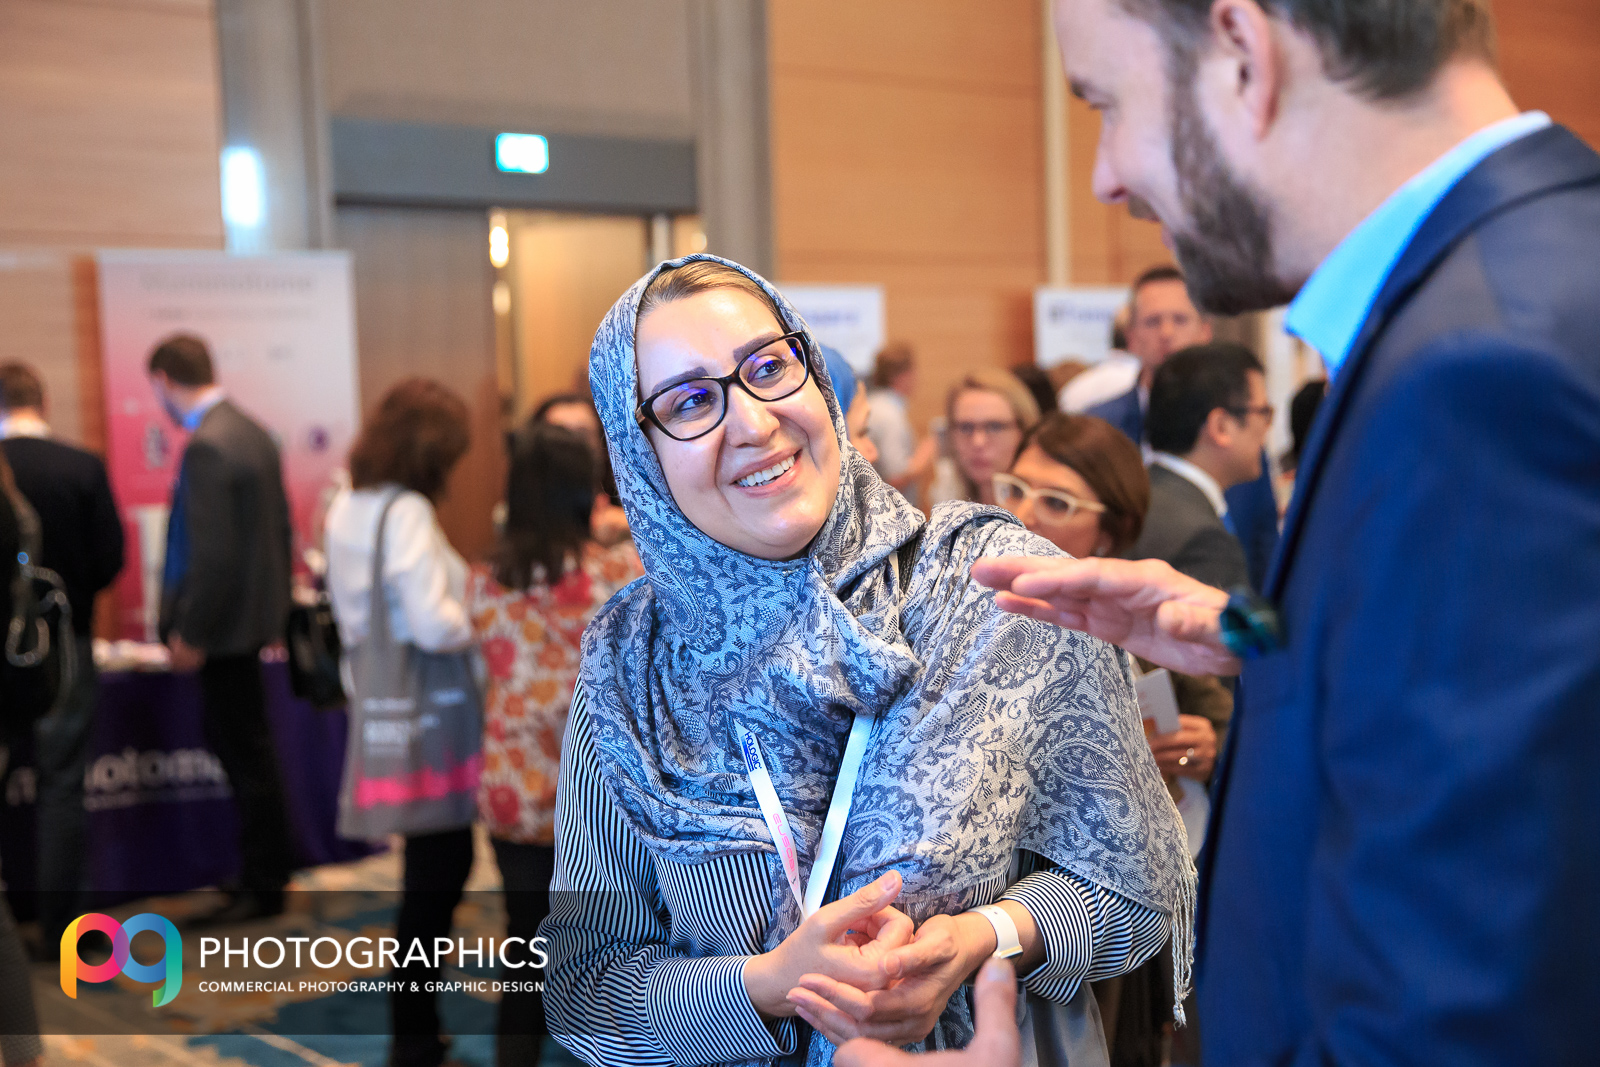 conference-event-photography-edinburgh-glasgow-berlin-17.jpg